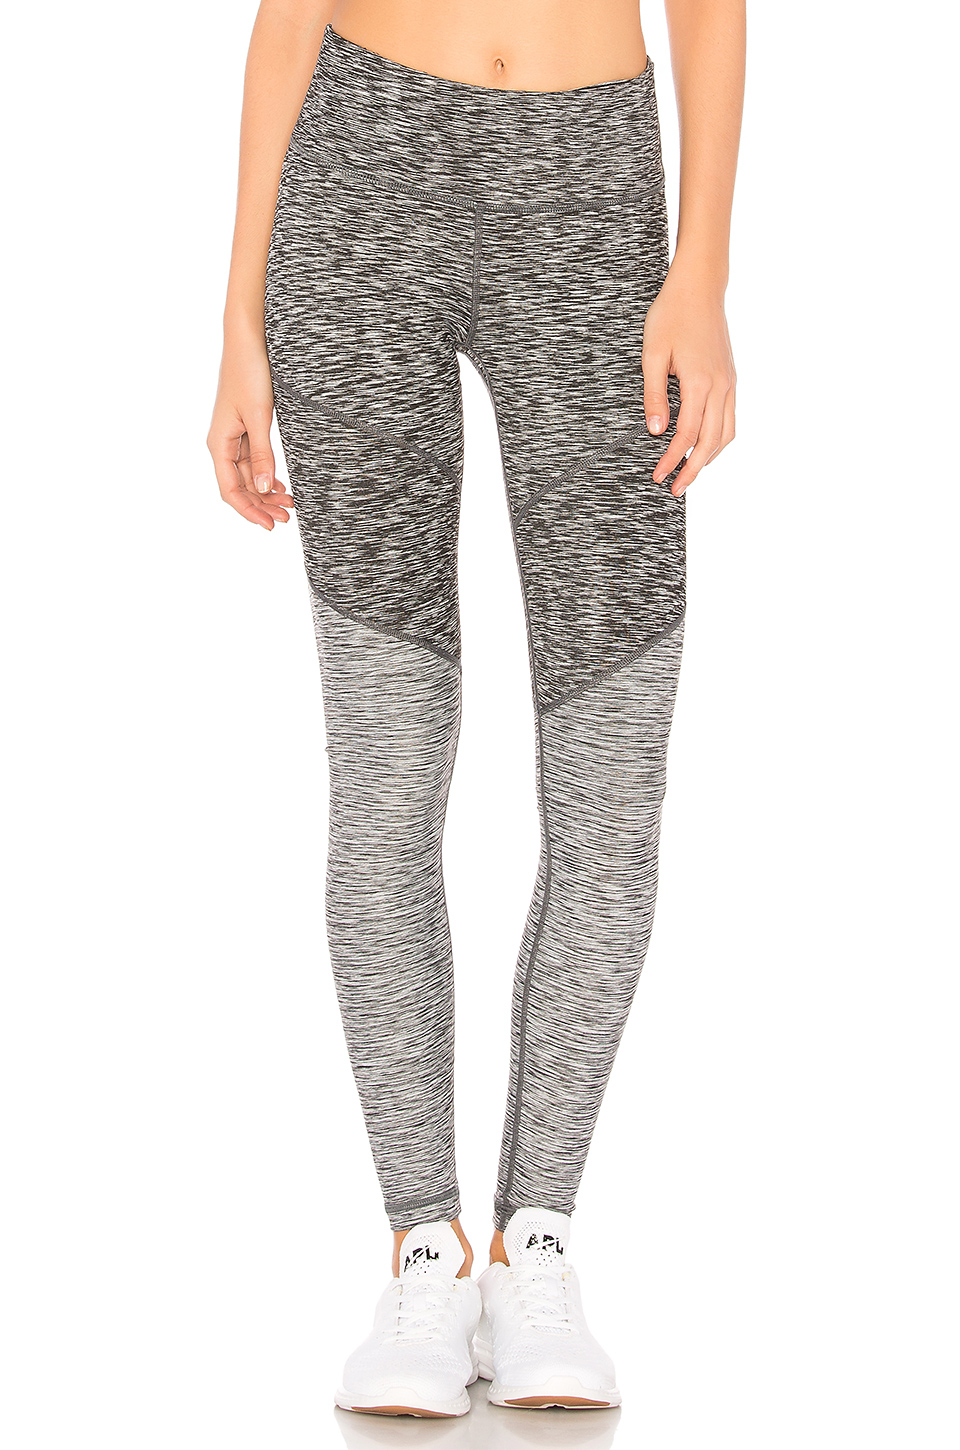 Vimmia Flip Reversible Legging in Charcoal